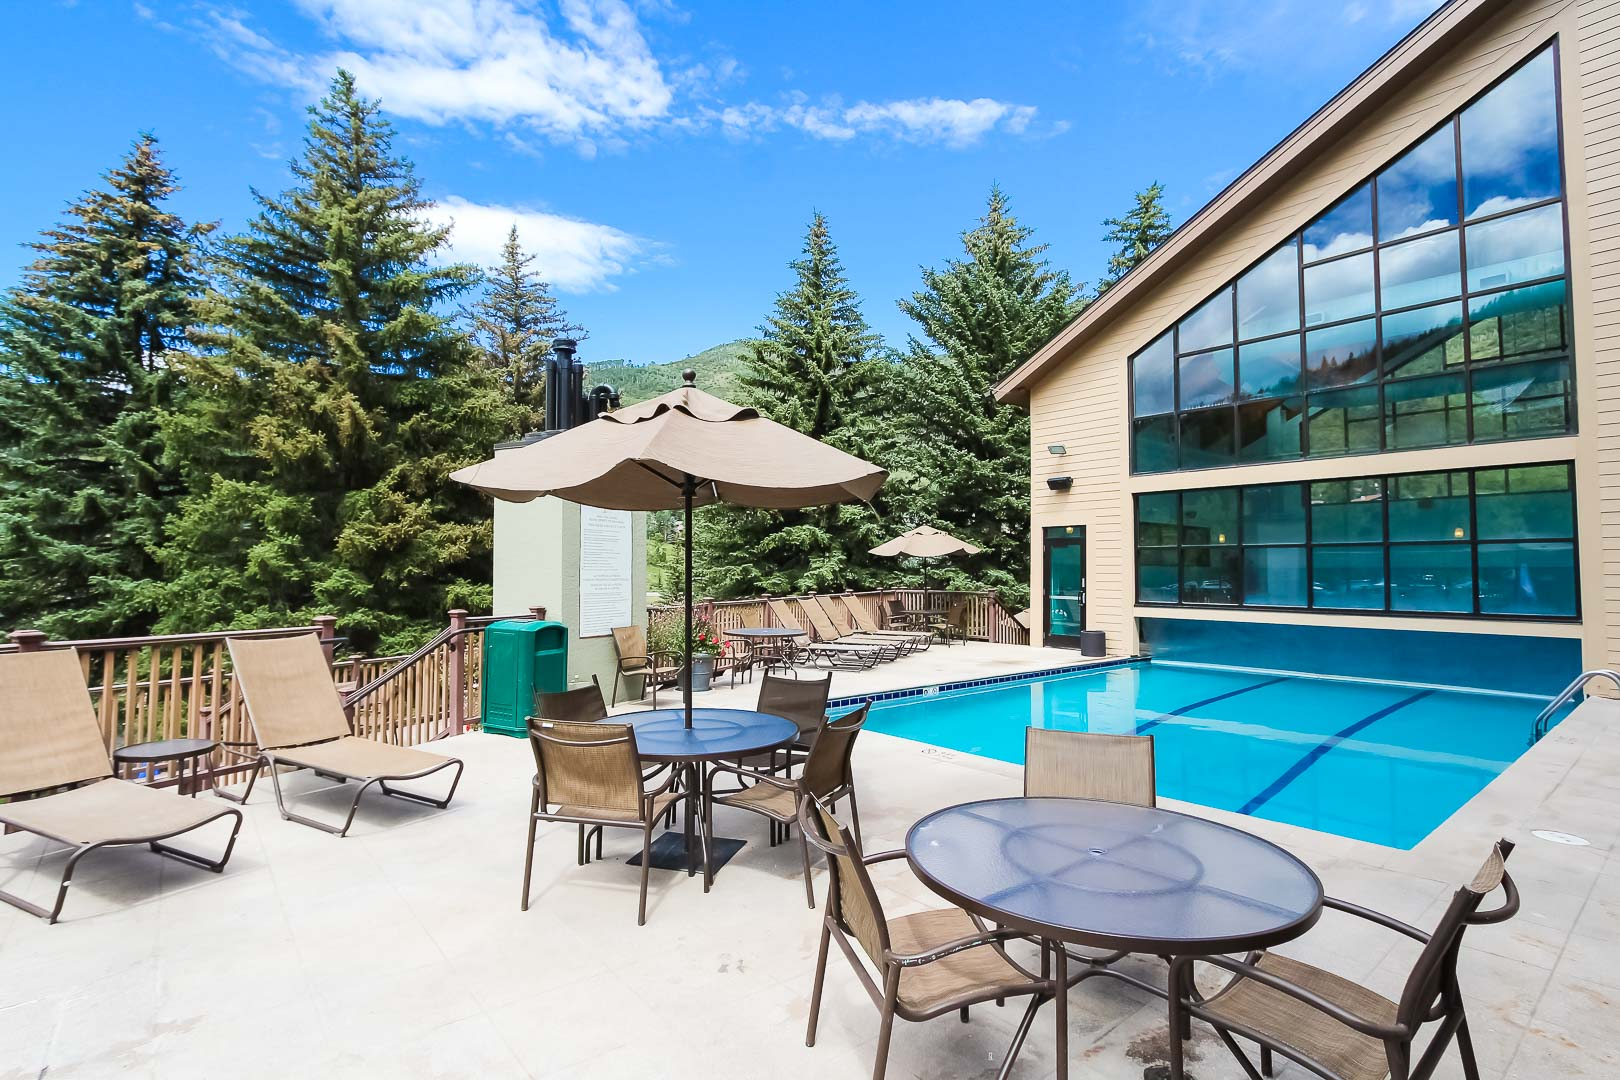 An outdoor swimming pool and lounging chairs at VRI's Cedar at Streamside in Colorado.